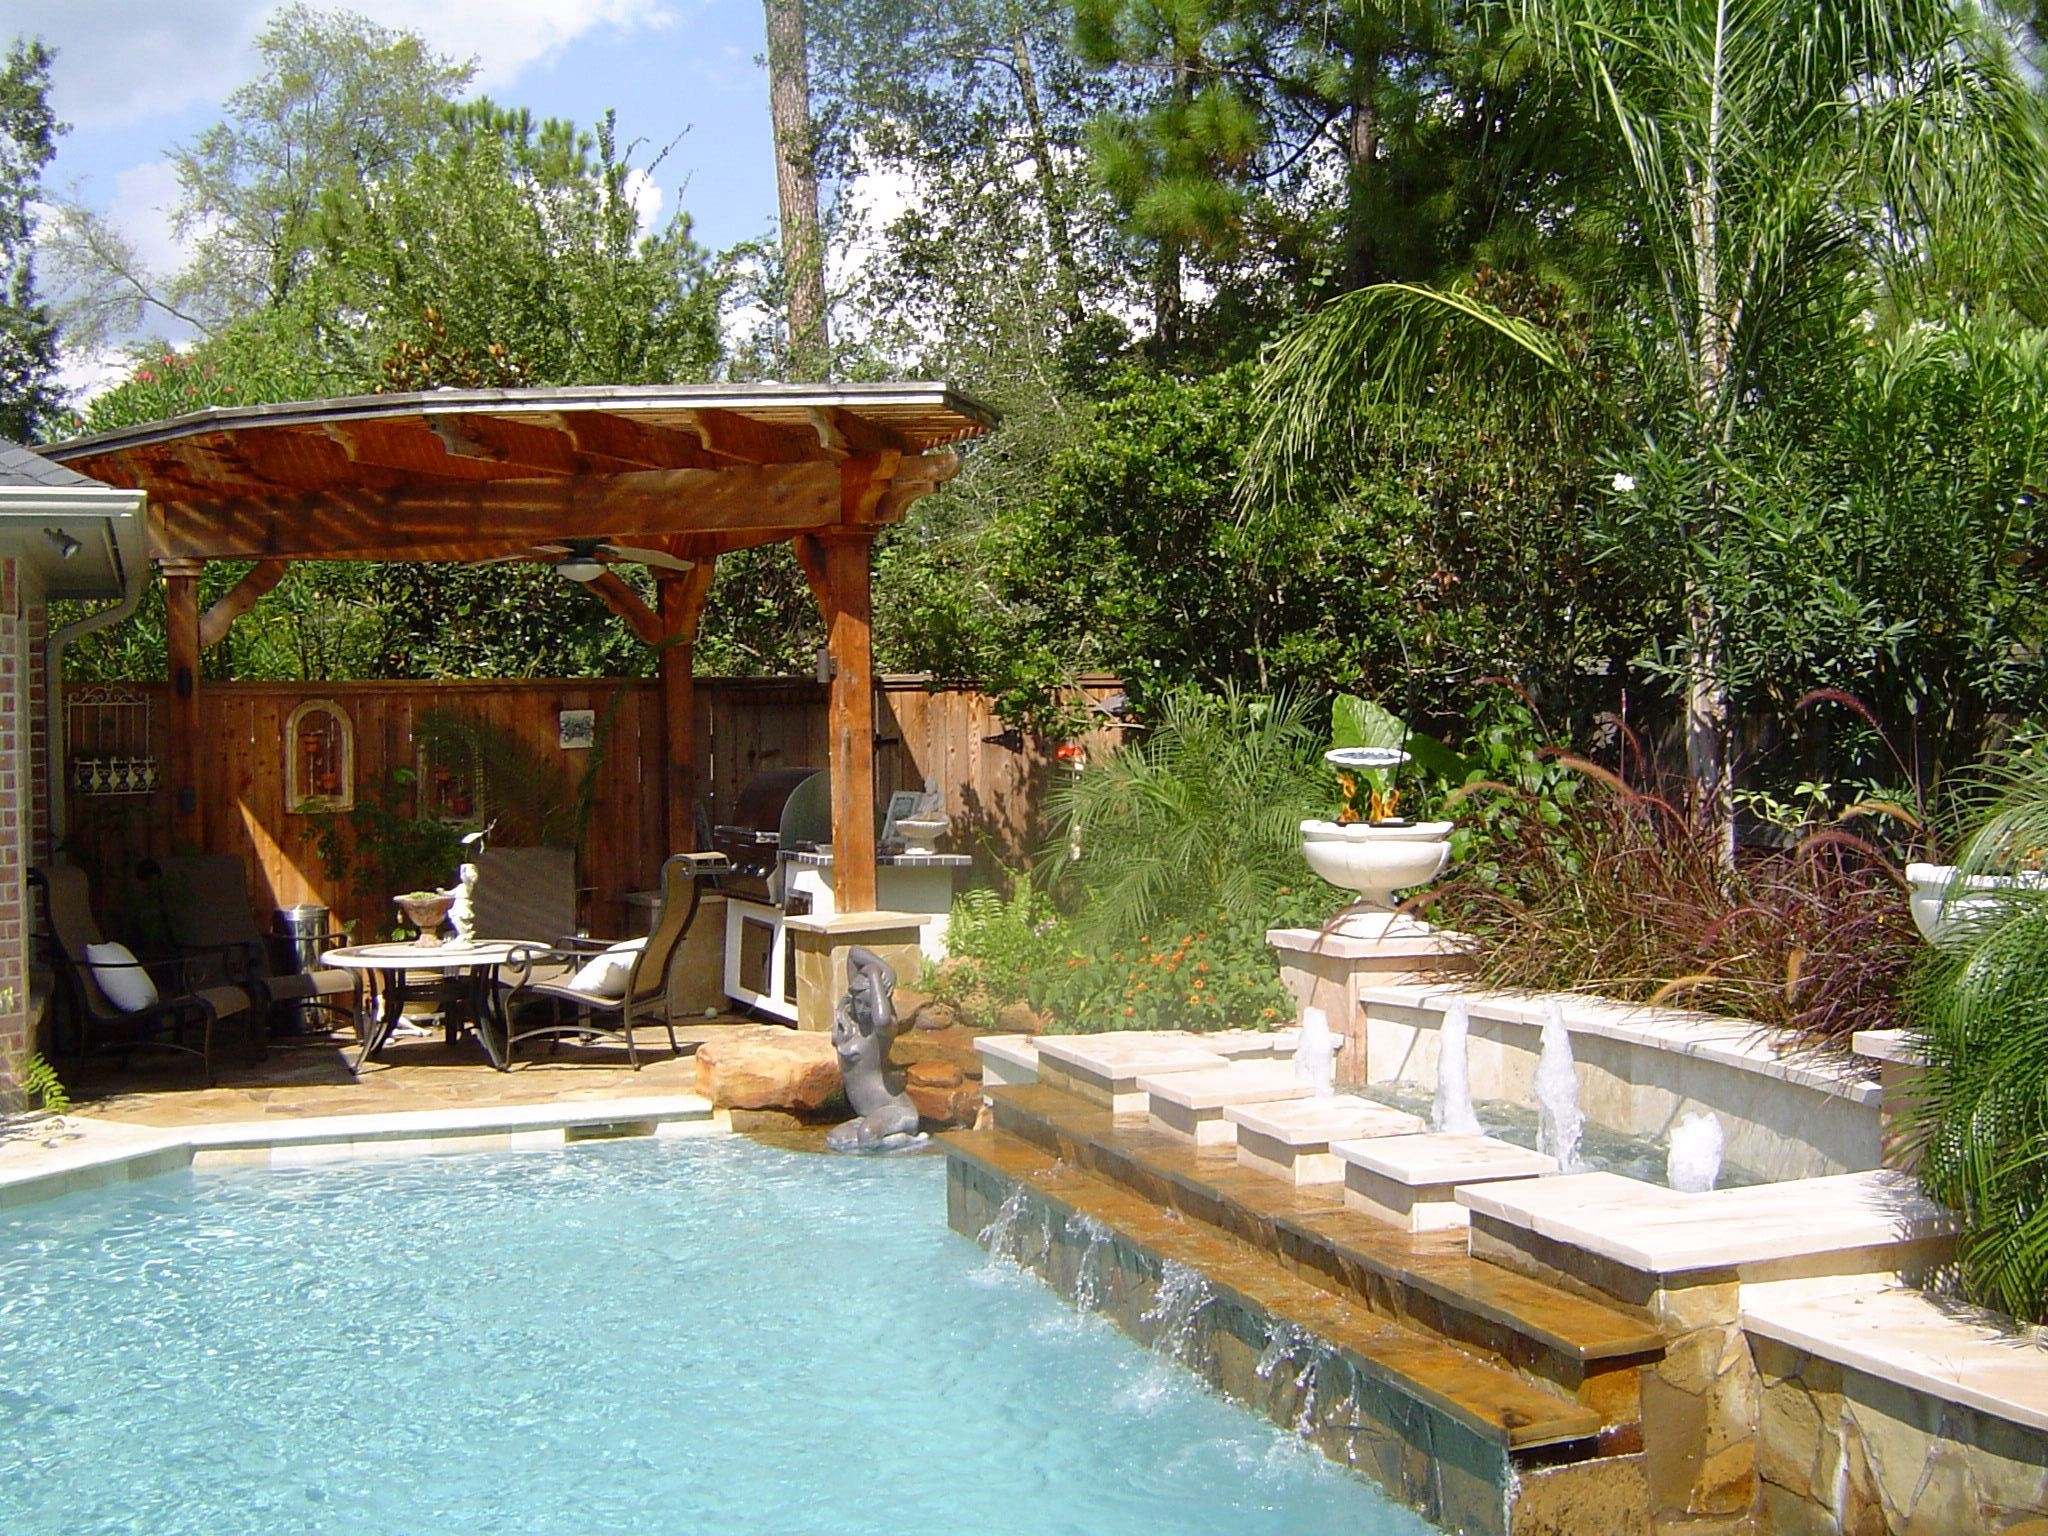 backyard pool landscaping ideashomesfeed - Backyard Pool Design Ideas